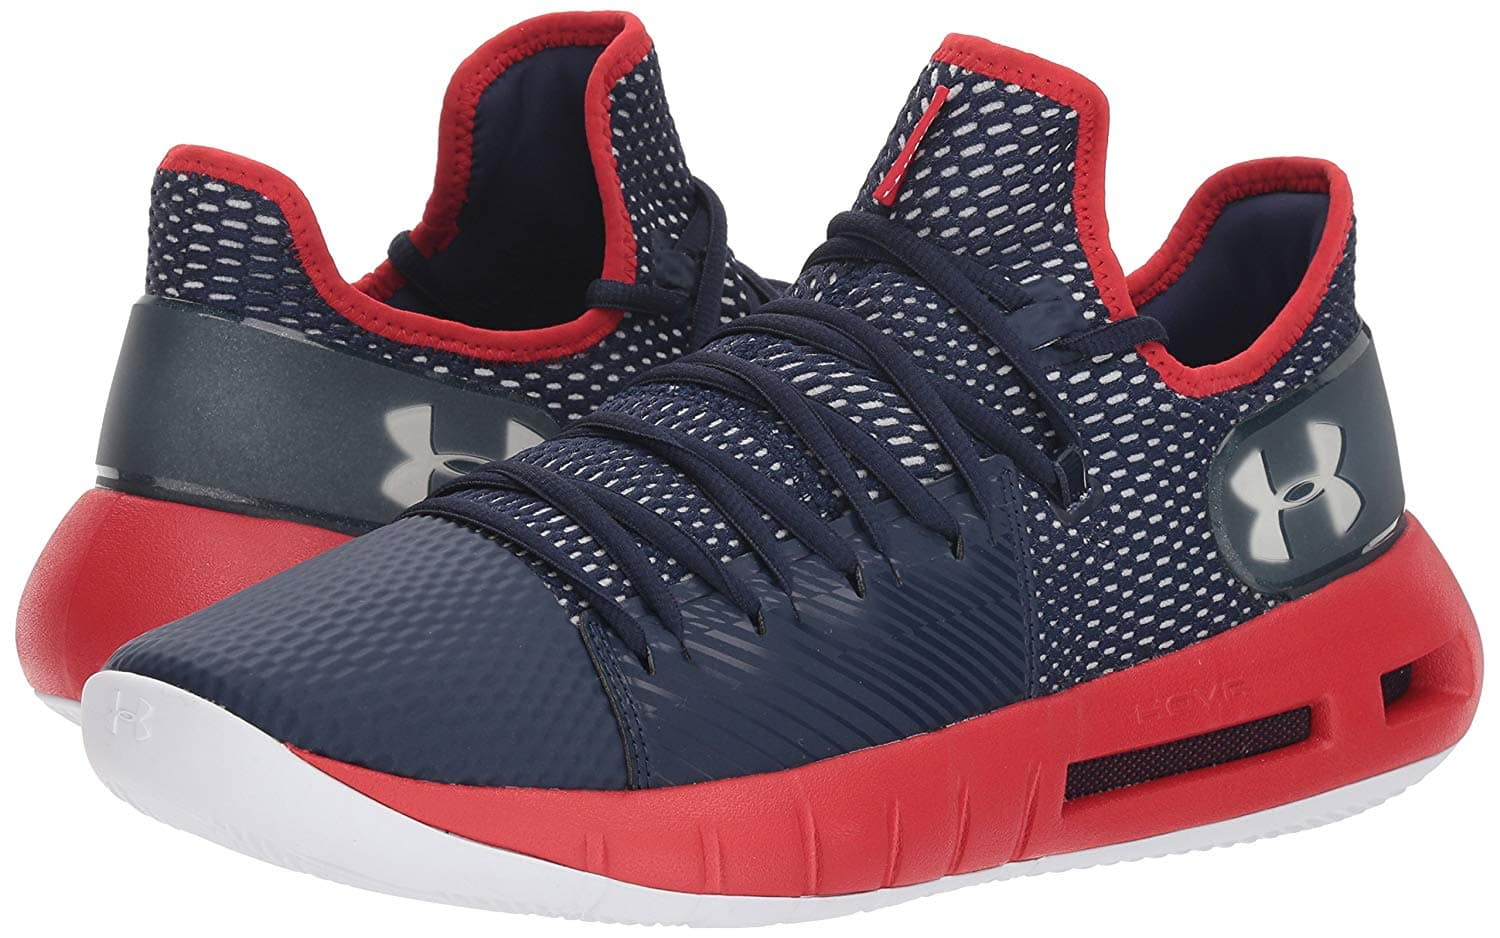 competitive price a7eea c8b67 Under Armour Men's Drive 5 (HOVR Havoc?) Low Basketball Shoe ...